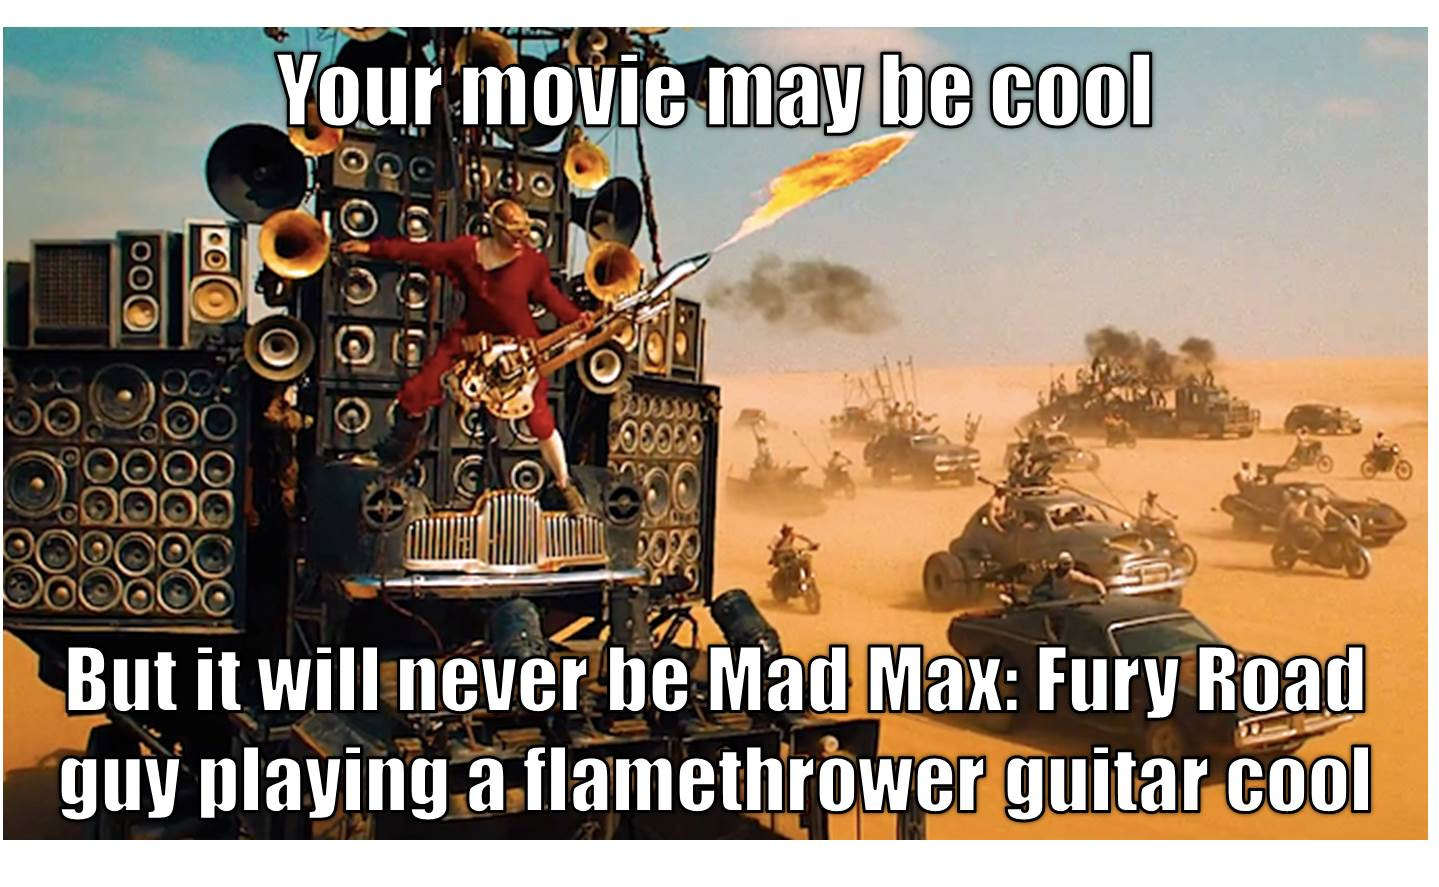 Mad Max Fury Road You may be cool meme